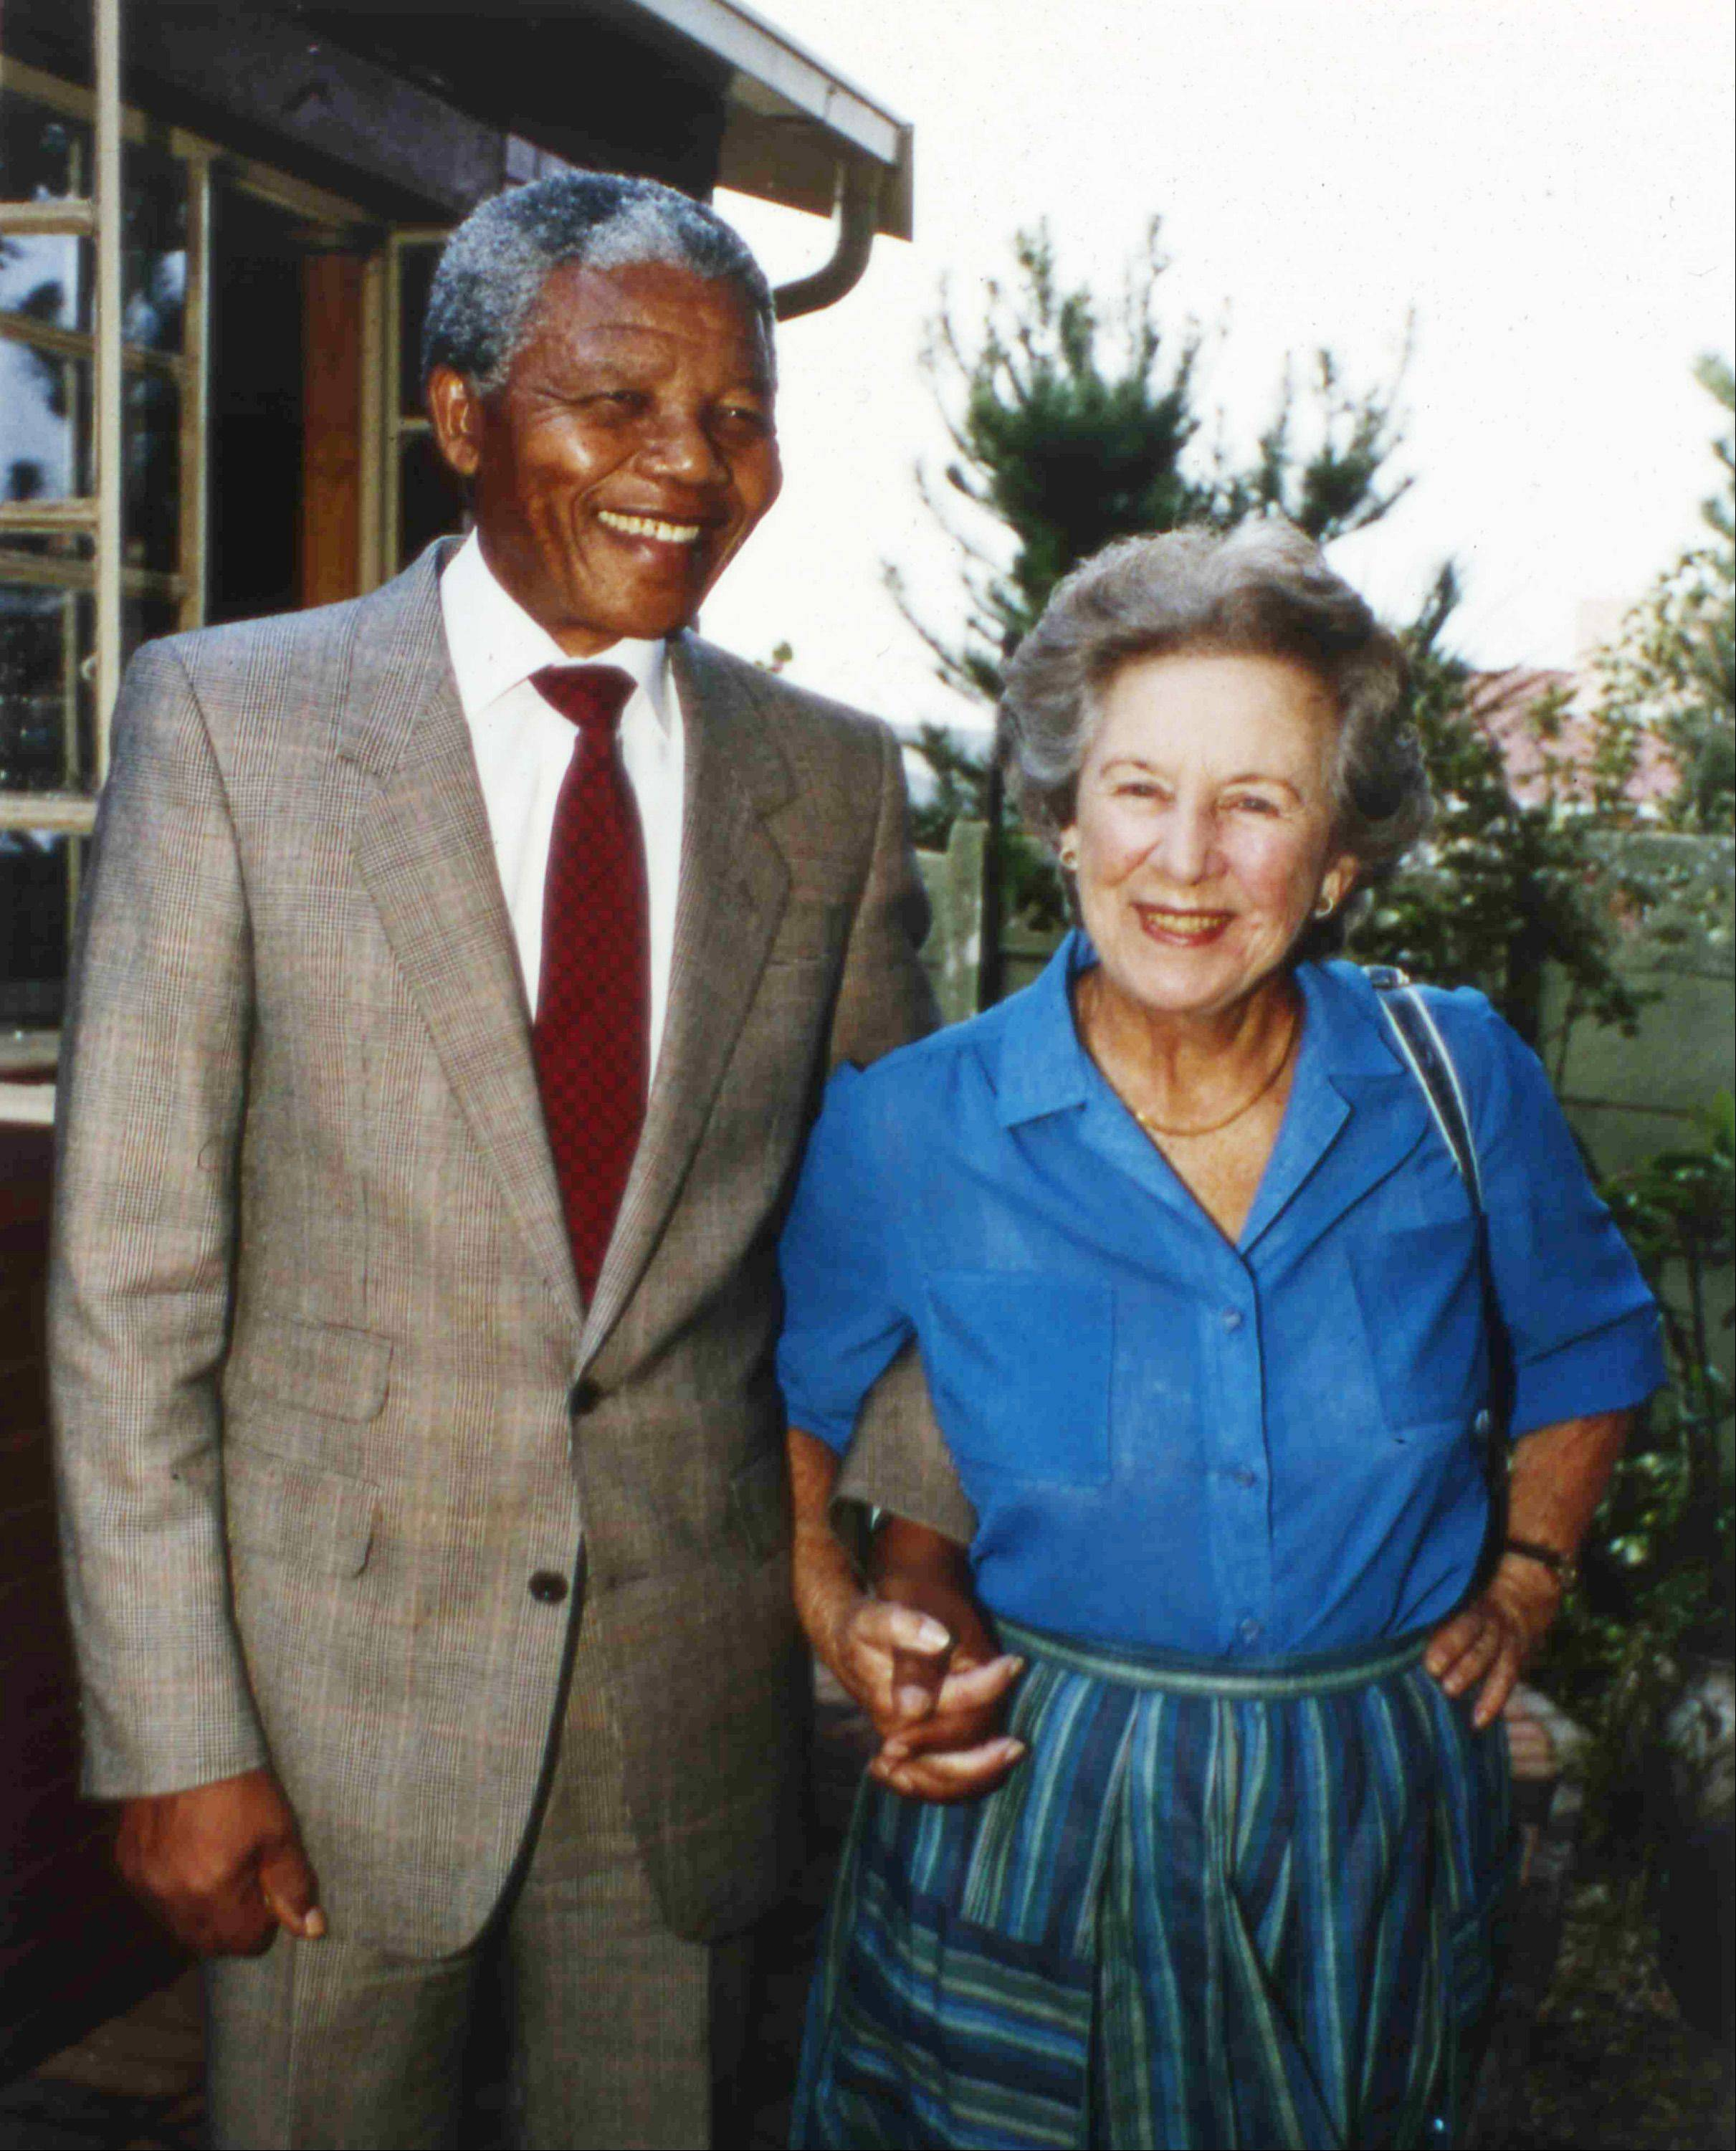 Veteran anti-apartheid ex-member of Parliament, Helen Suzman, right, holds hands with recently released ANC leader Nelson Mandela, when Suzman visited Mandela at his Soweto home, Feb. 26, 1990.